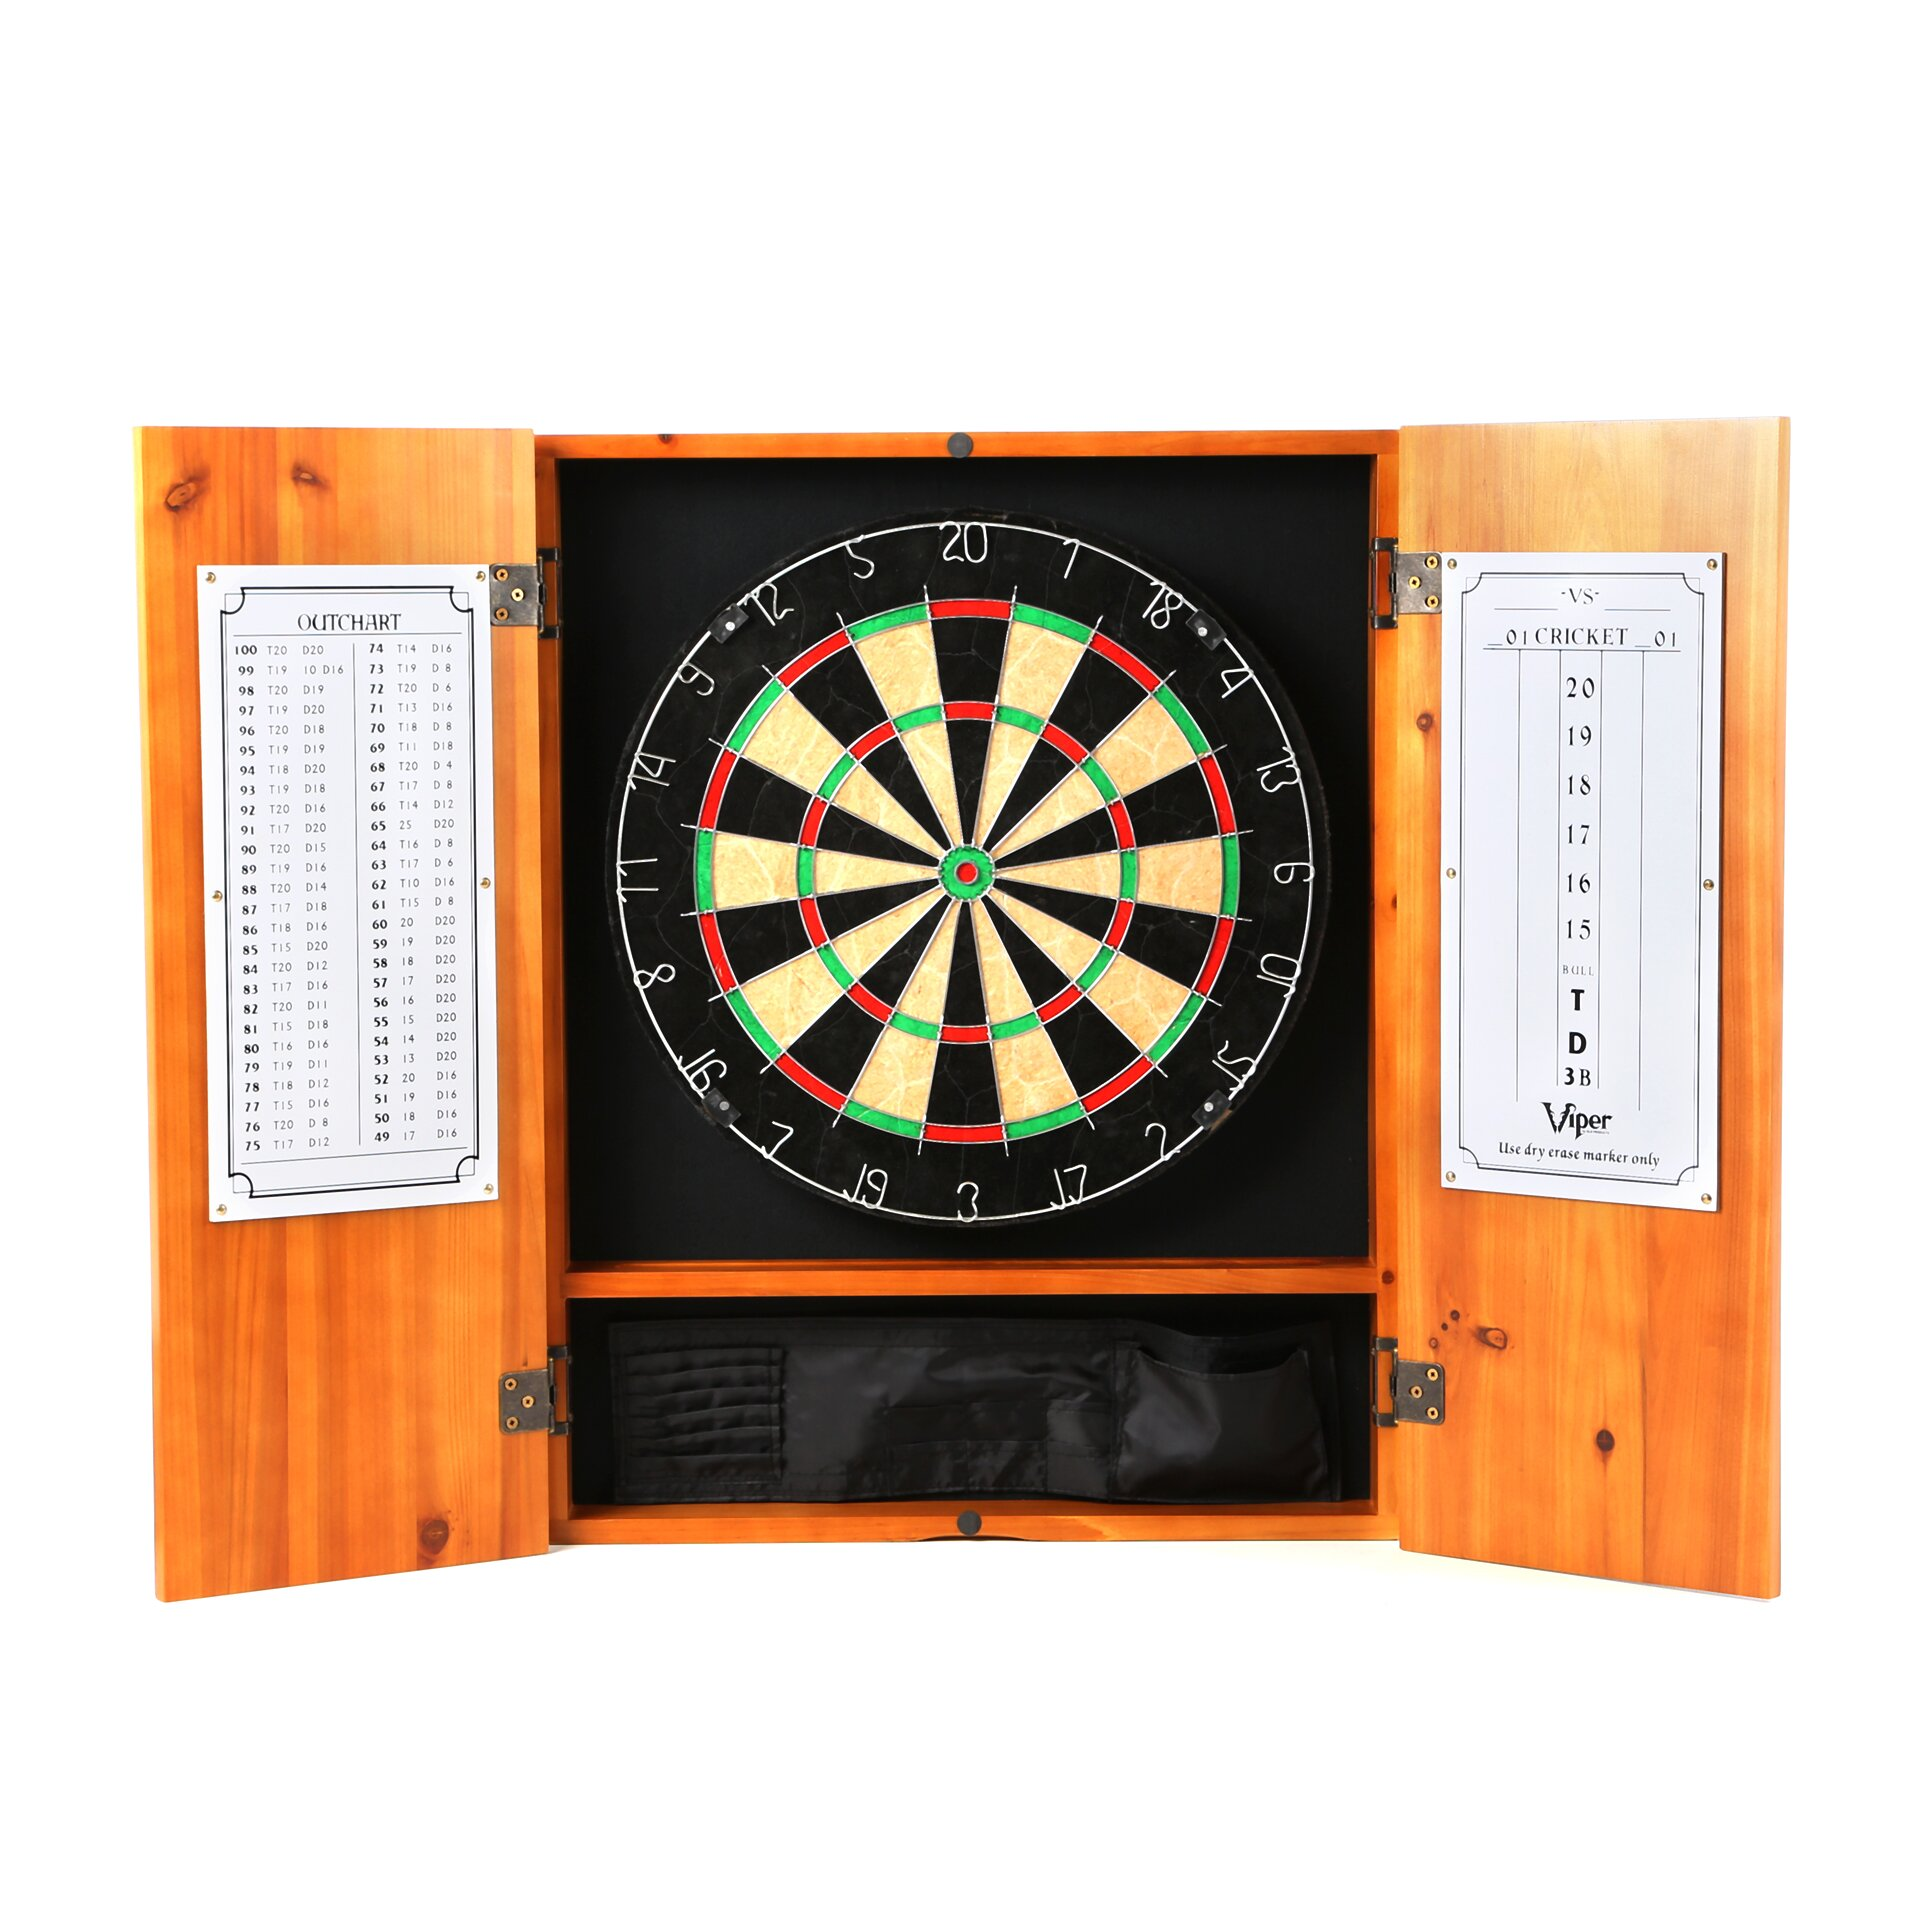 How To Hang A Dartboard Cabinet On Drywall Digitalstudiosweb Com